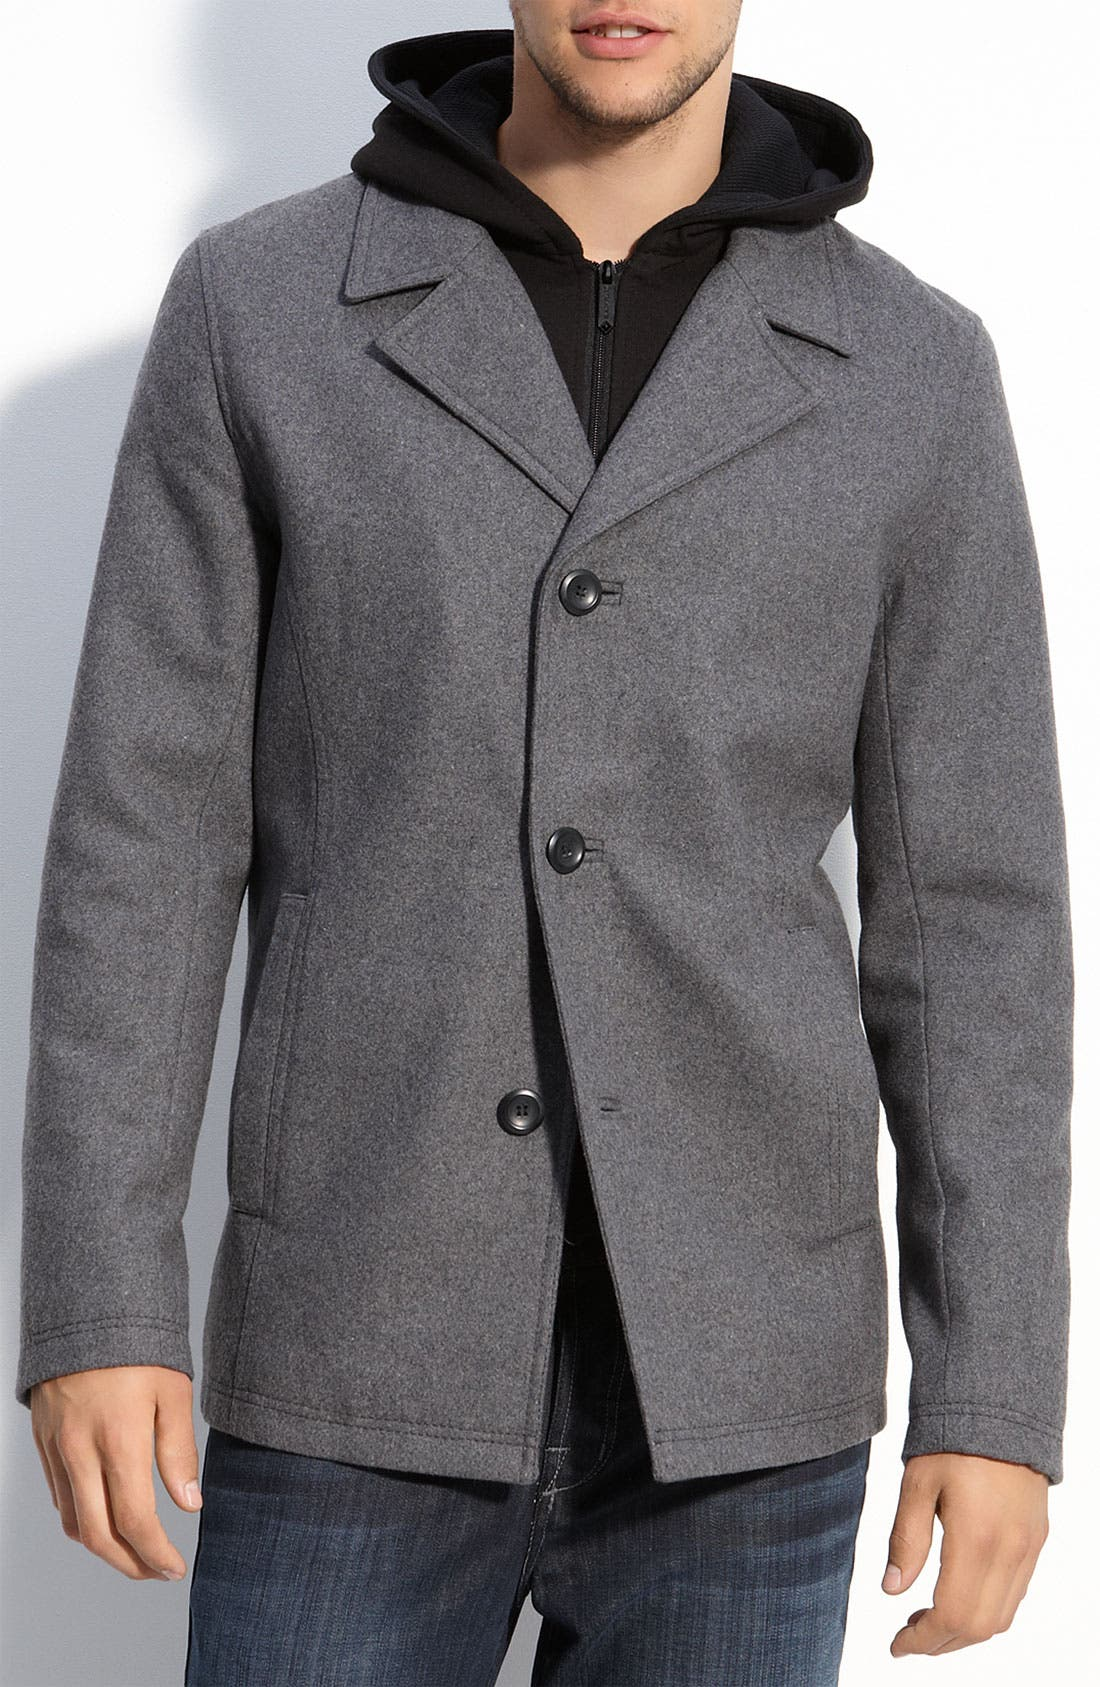 Alternate Image 1 Selected - Black Rivet Trim Fit Single Breasted Peacoat with Removable Hooded Layer